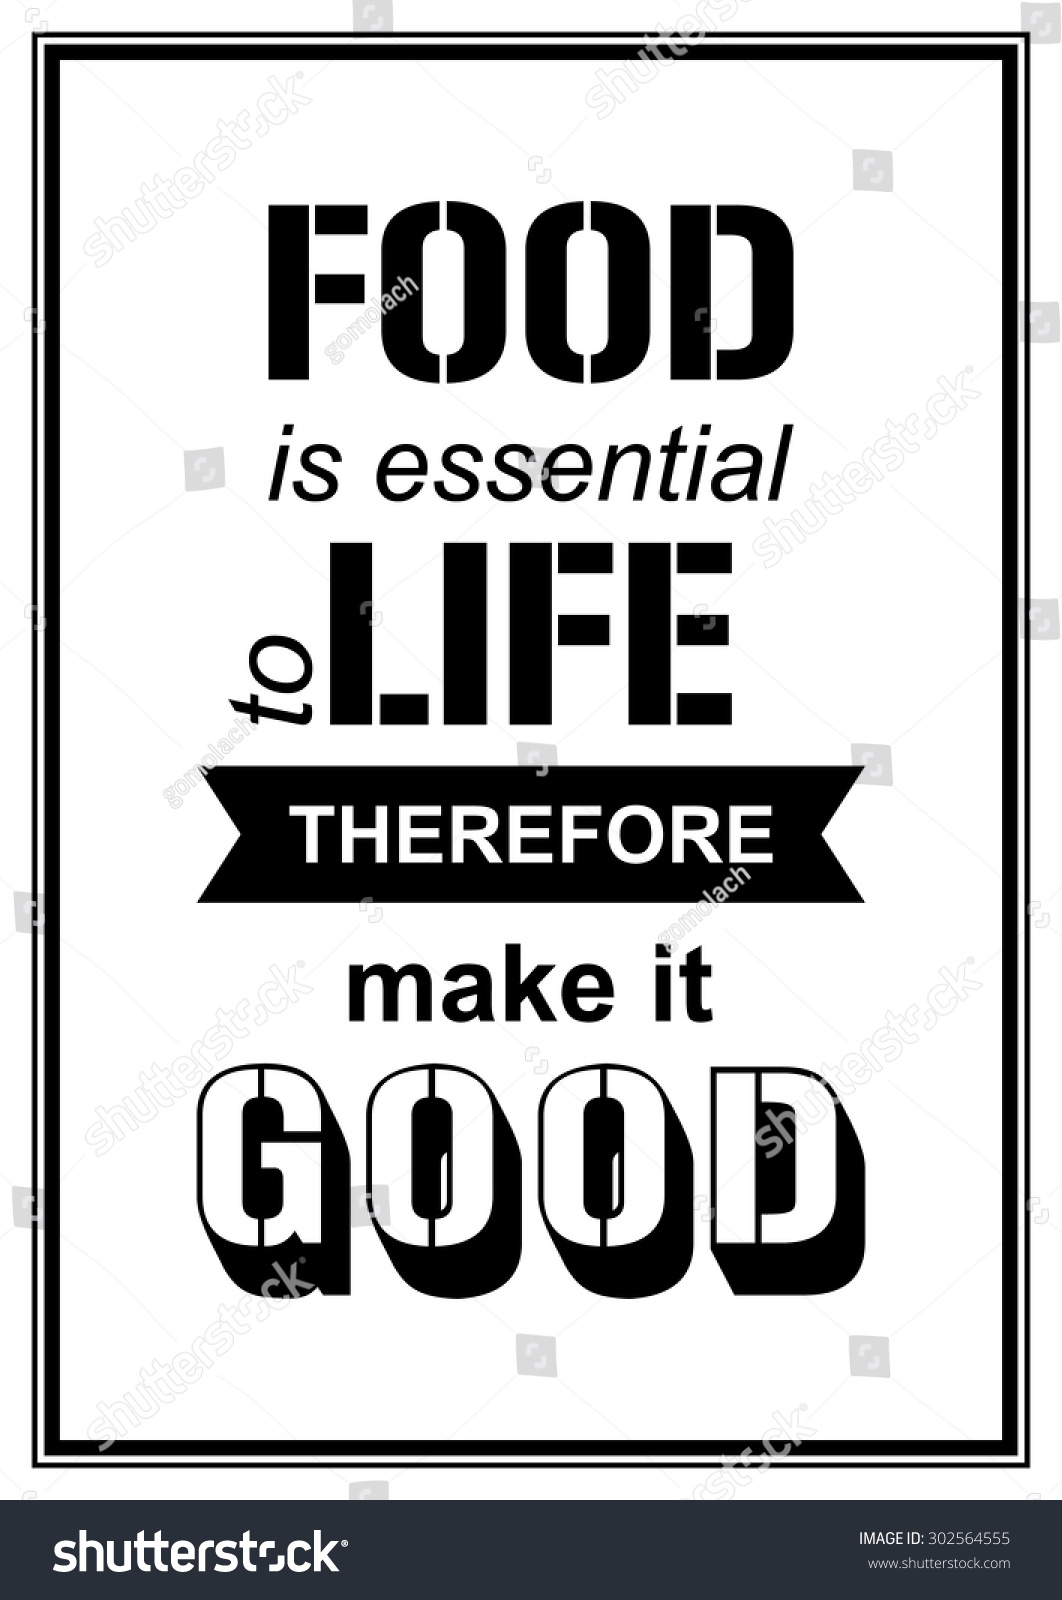 Good Quote About Life Food Essential Life Therefore Make Good Stock Vector 302564555